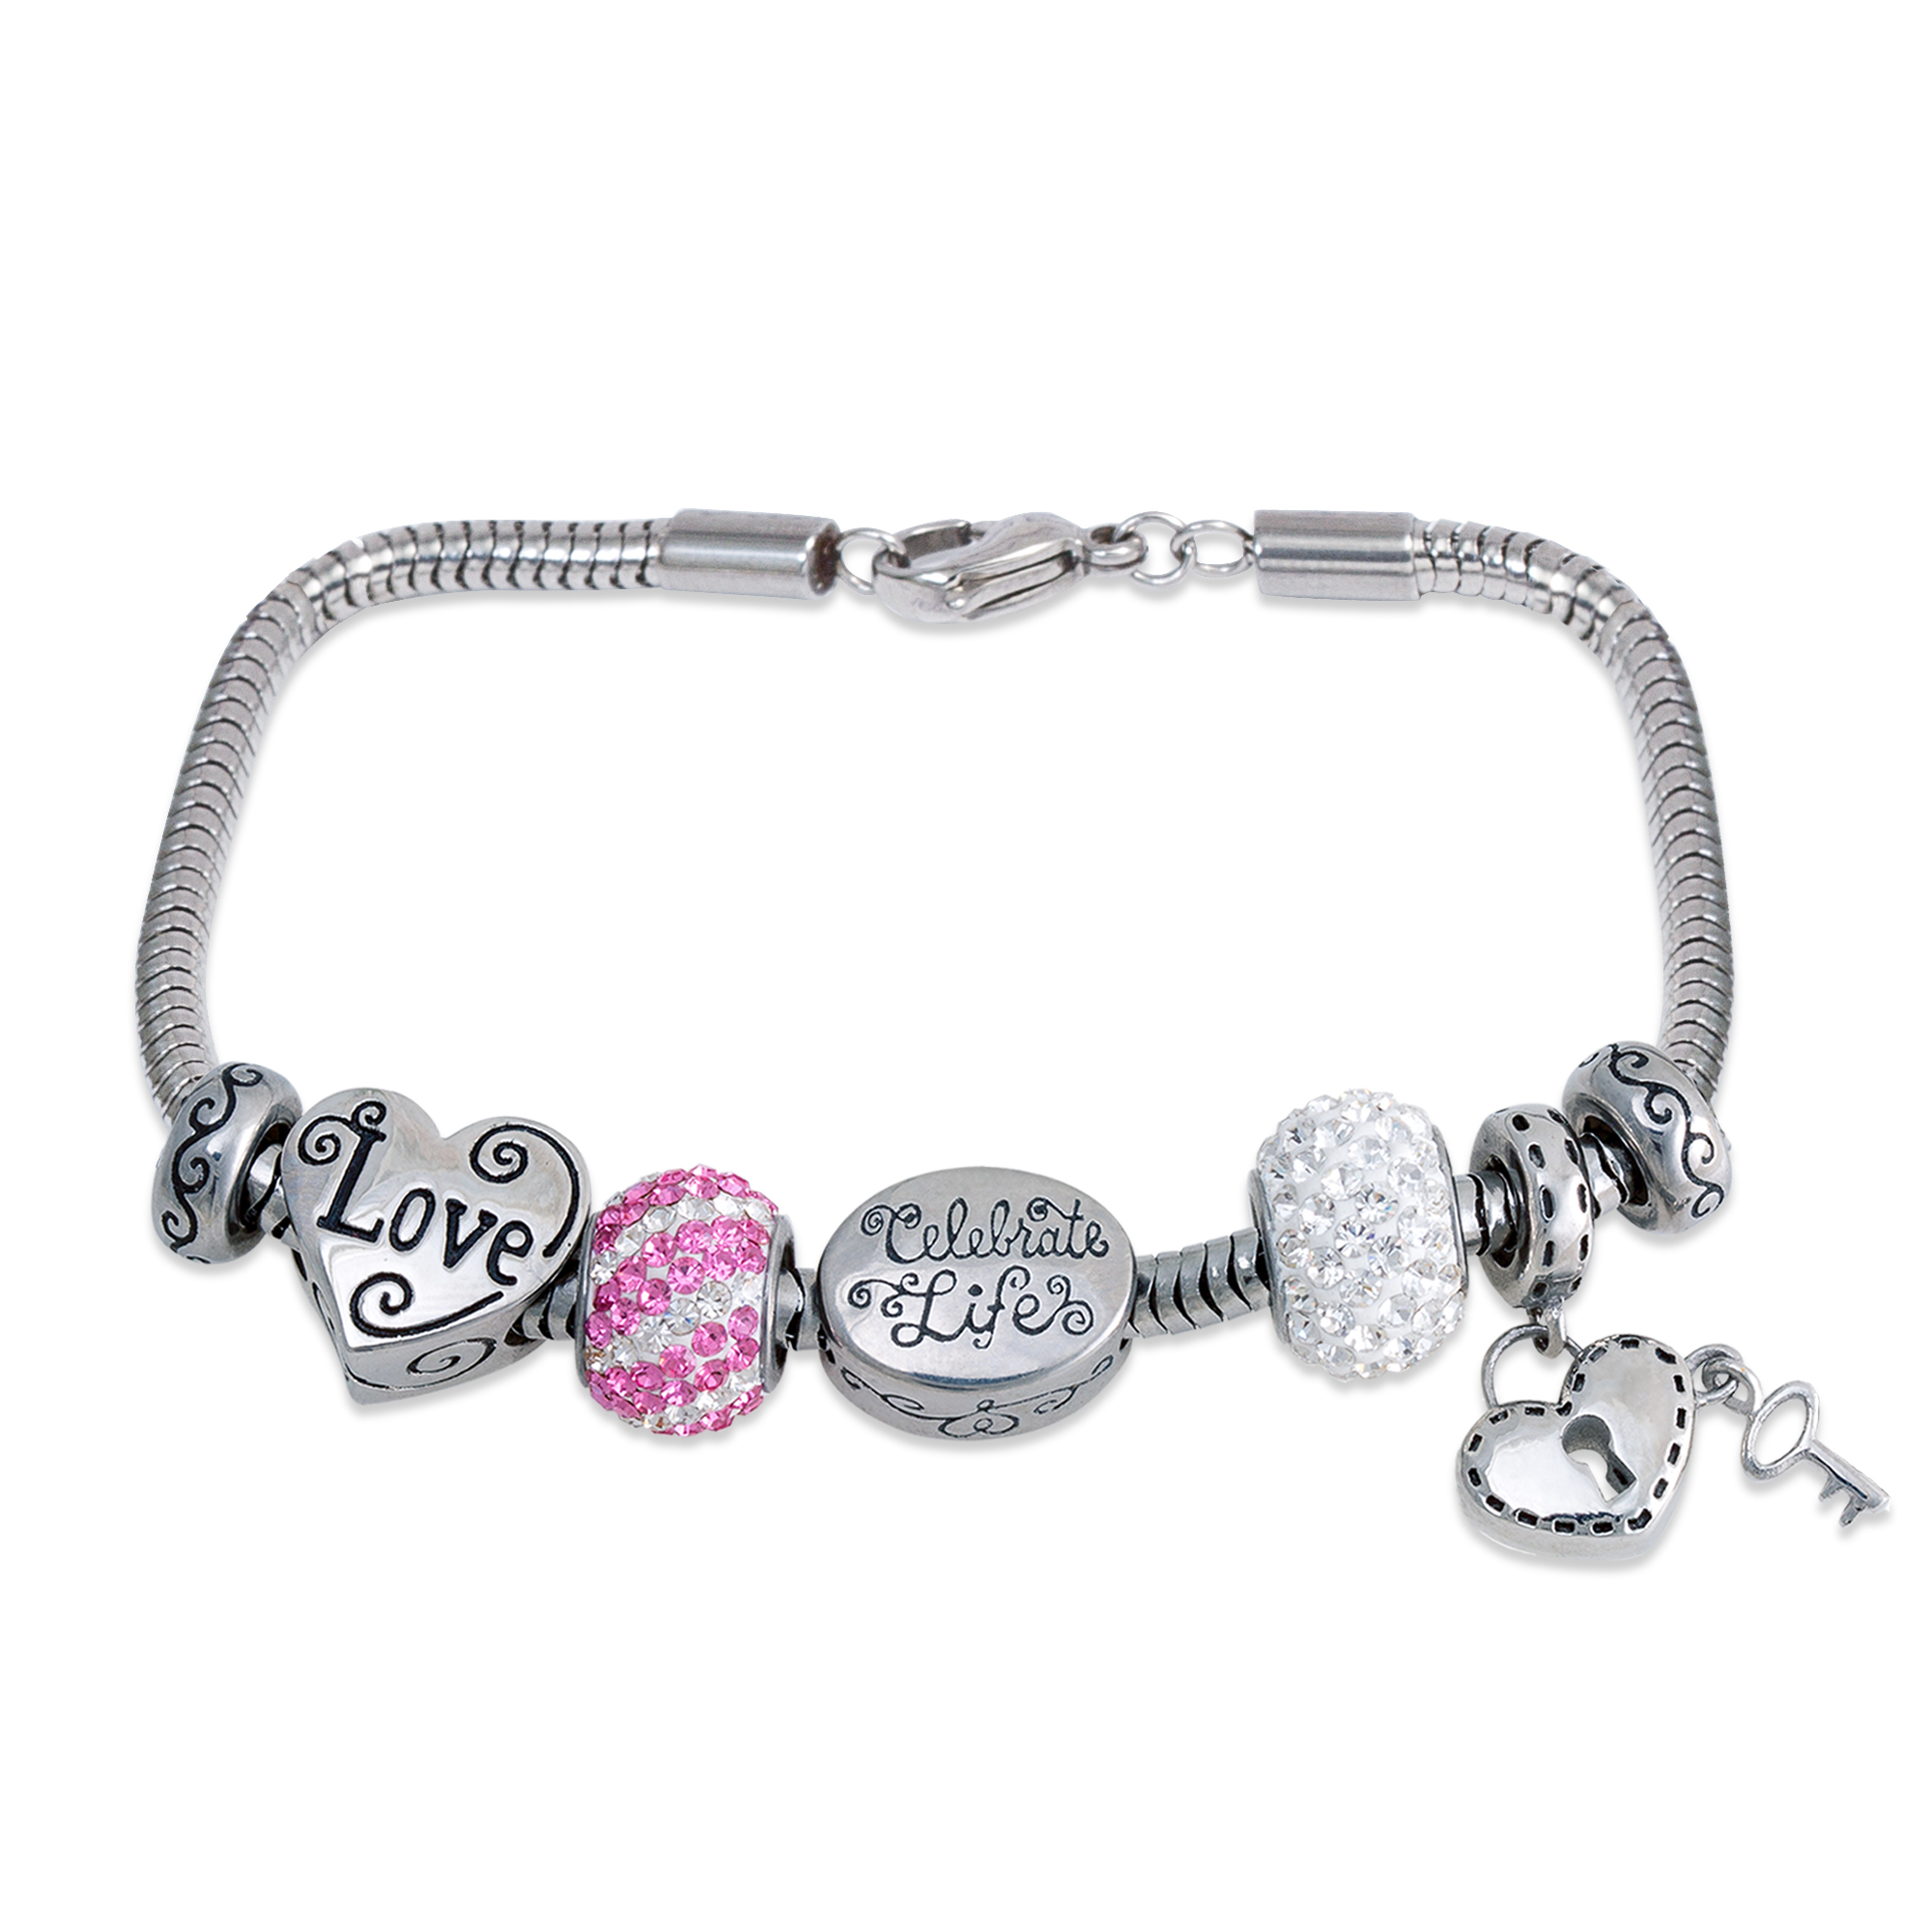 "Connections from Hallmark Stainless Steel Limited Edition ""Love"" Charm Bracelet Set"